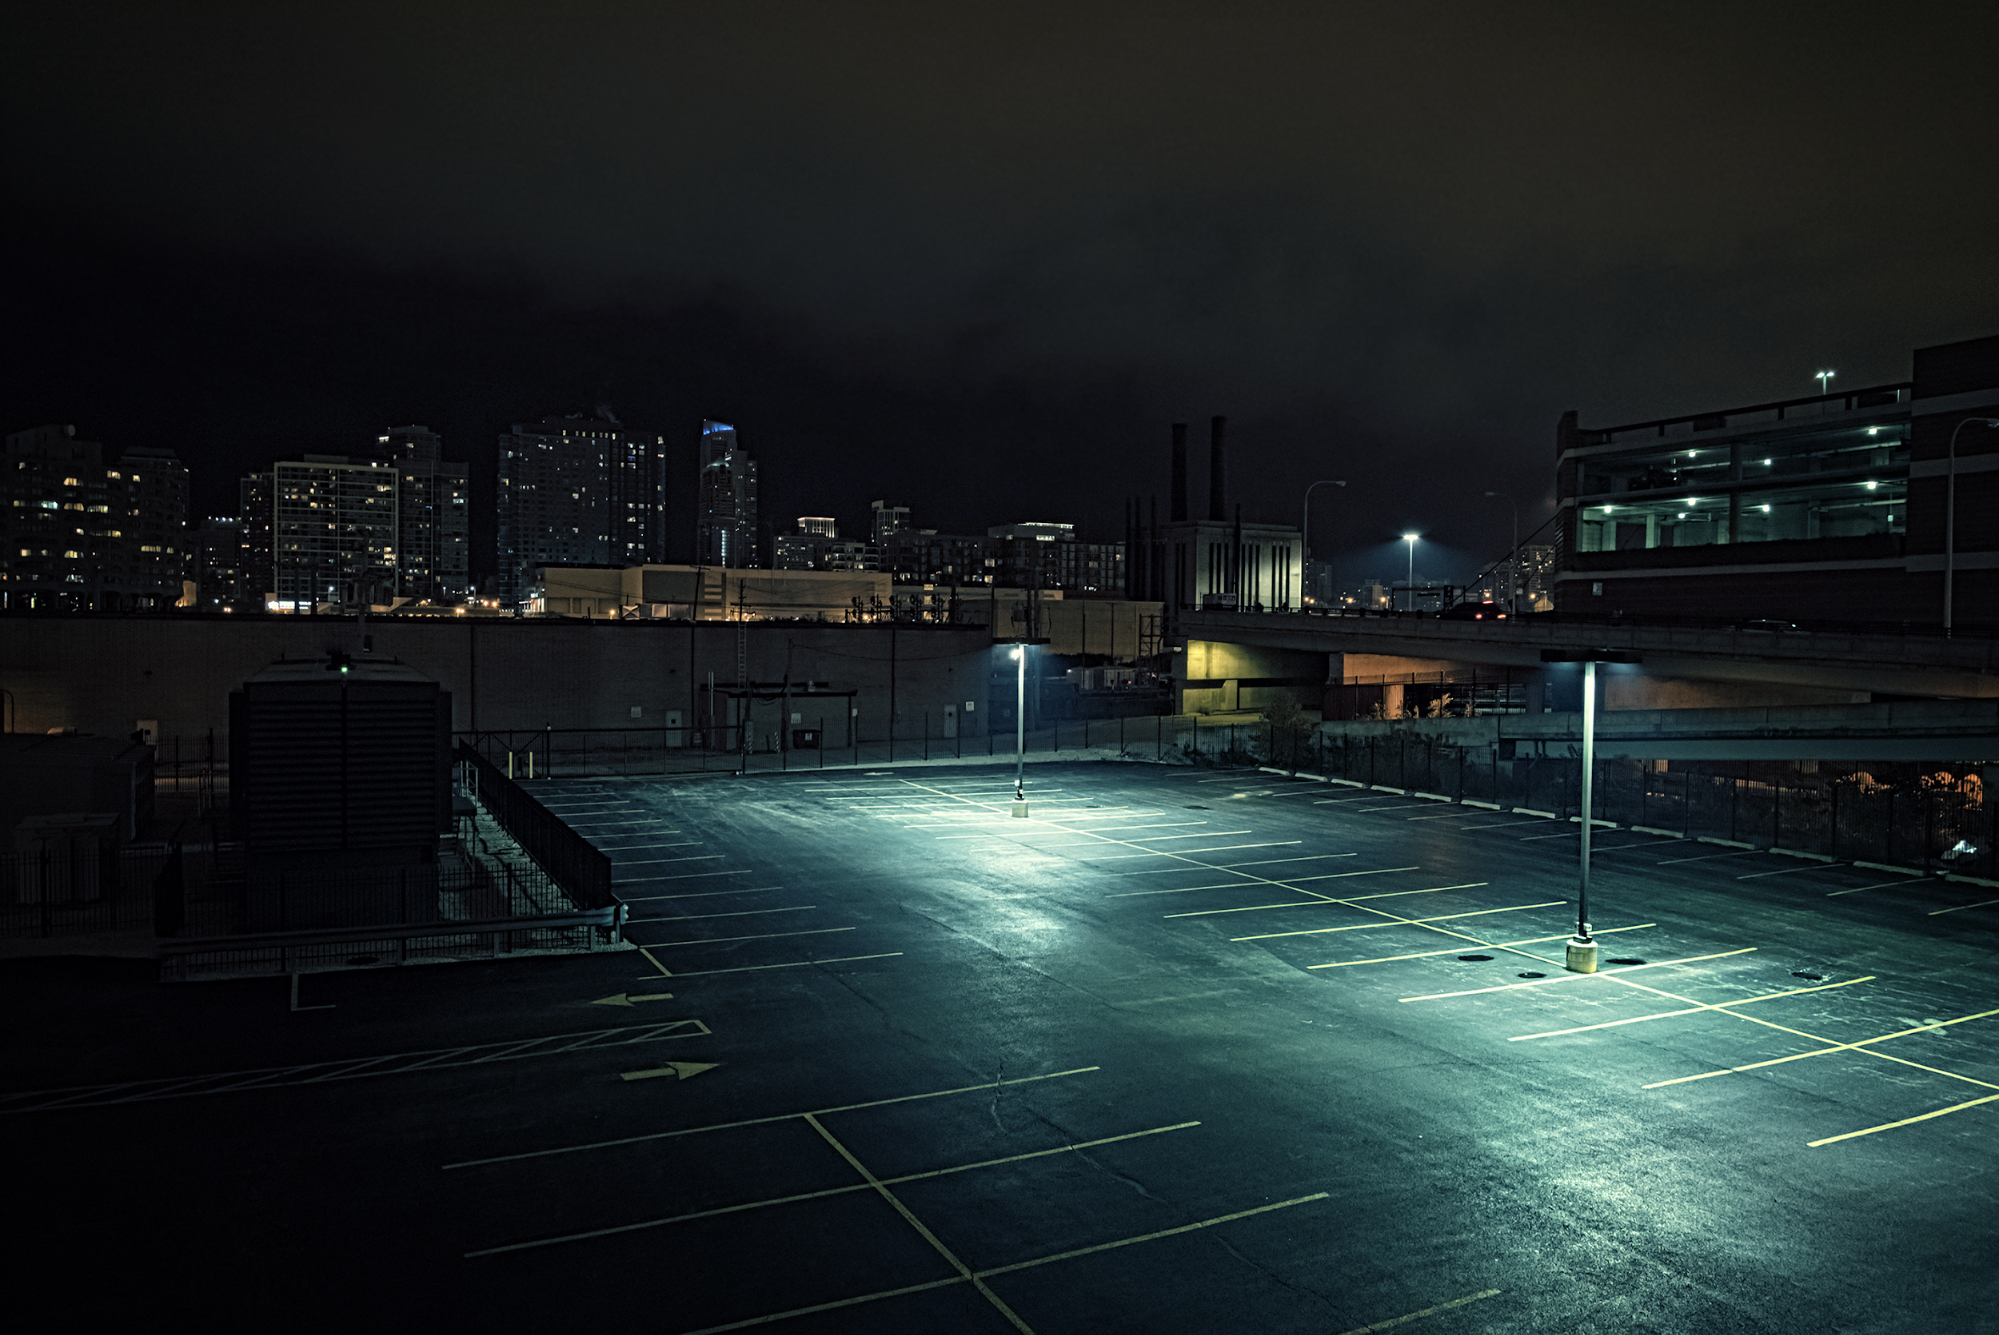 7 Proven Ways to Stay Safe and Protect Yourself in a Parking Lot